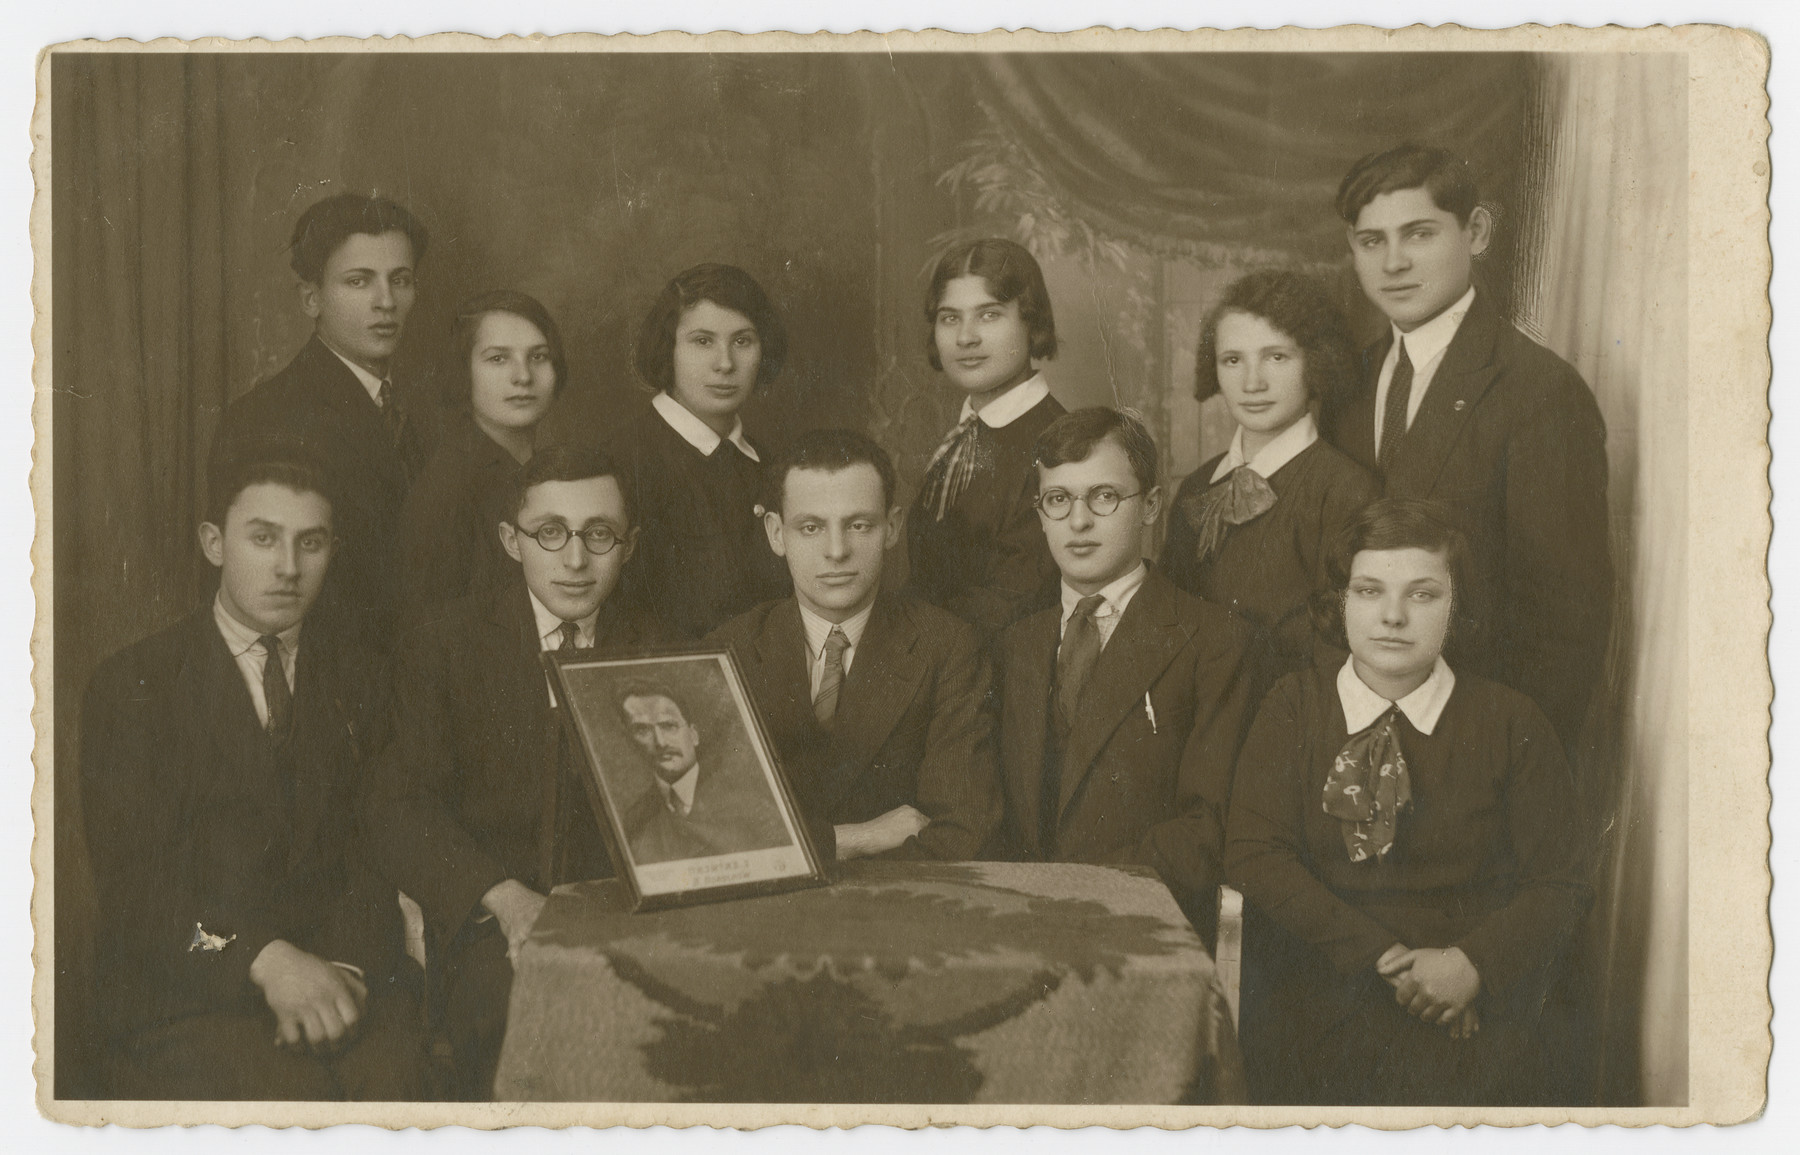 Group portrait of young men and women (possibly members of a youth organization) holding a portrait in prewar Sosnowiec.